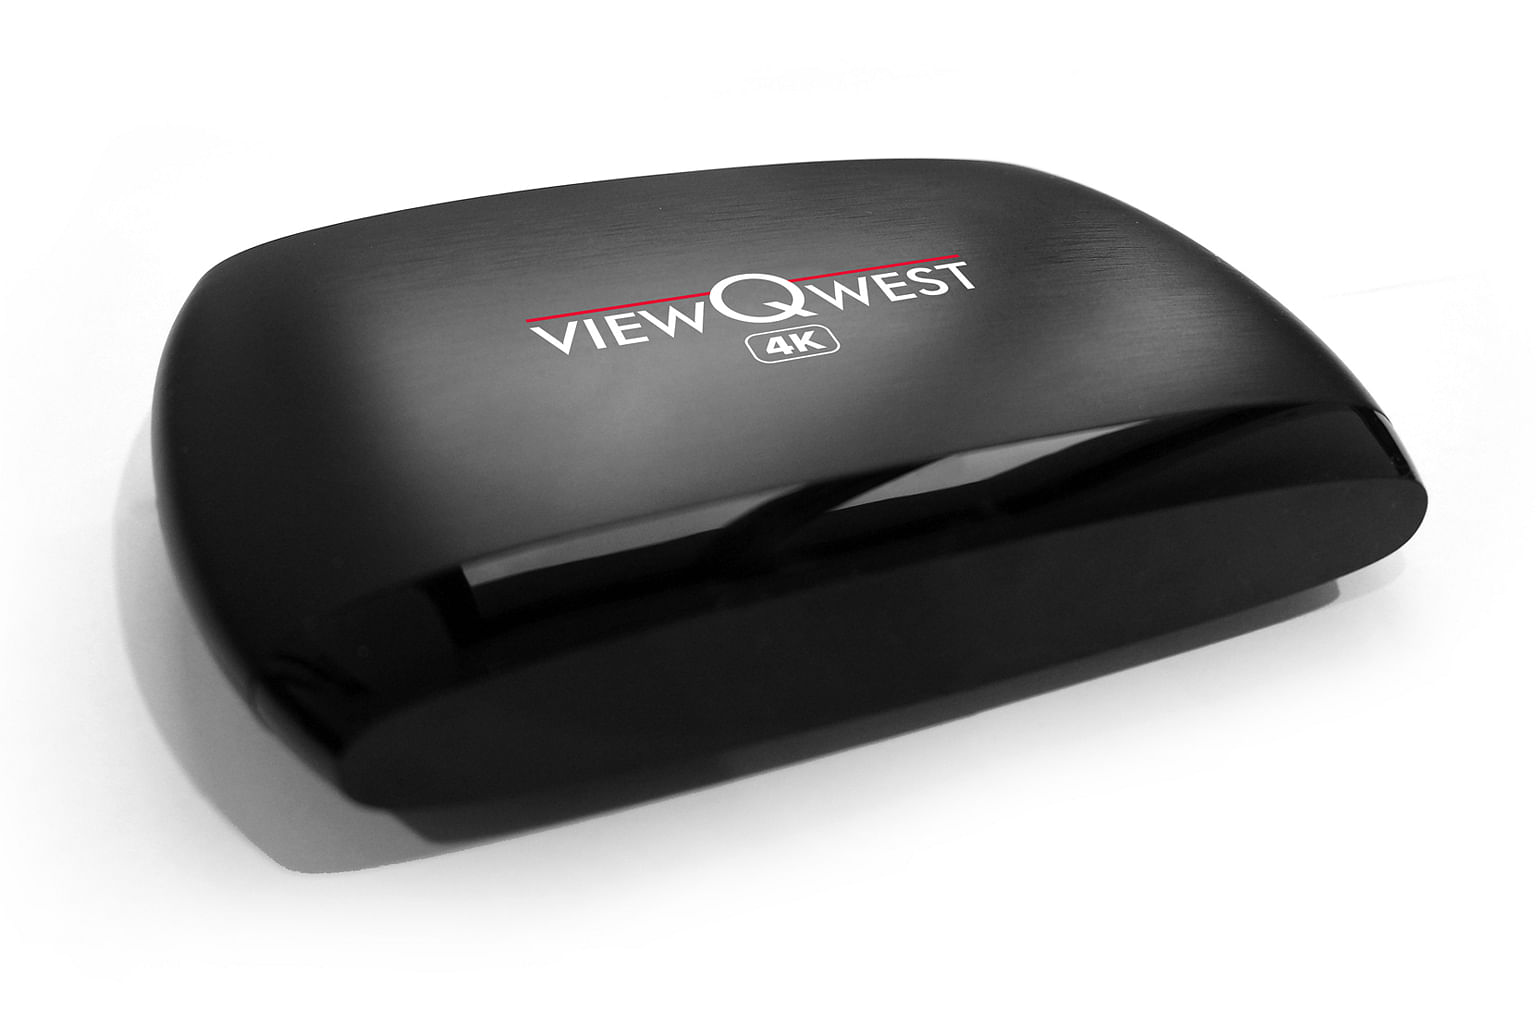 To enable Freedom VPN on the ViewQwest TV, you simply click a button within the preloaded DNS login app. There is no need to configure your home router or devices.